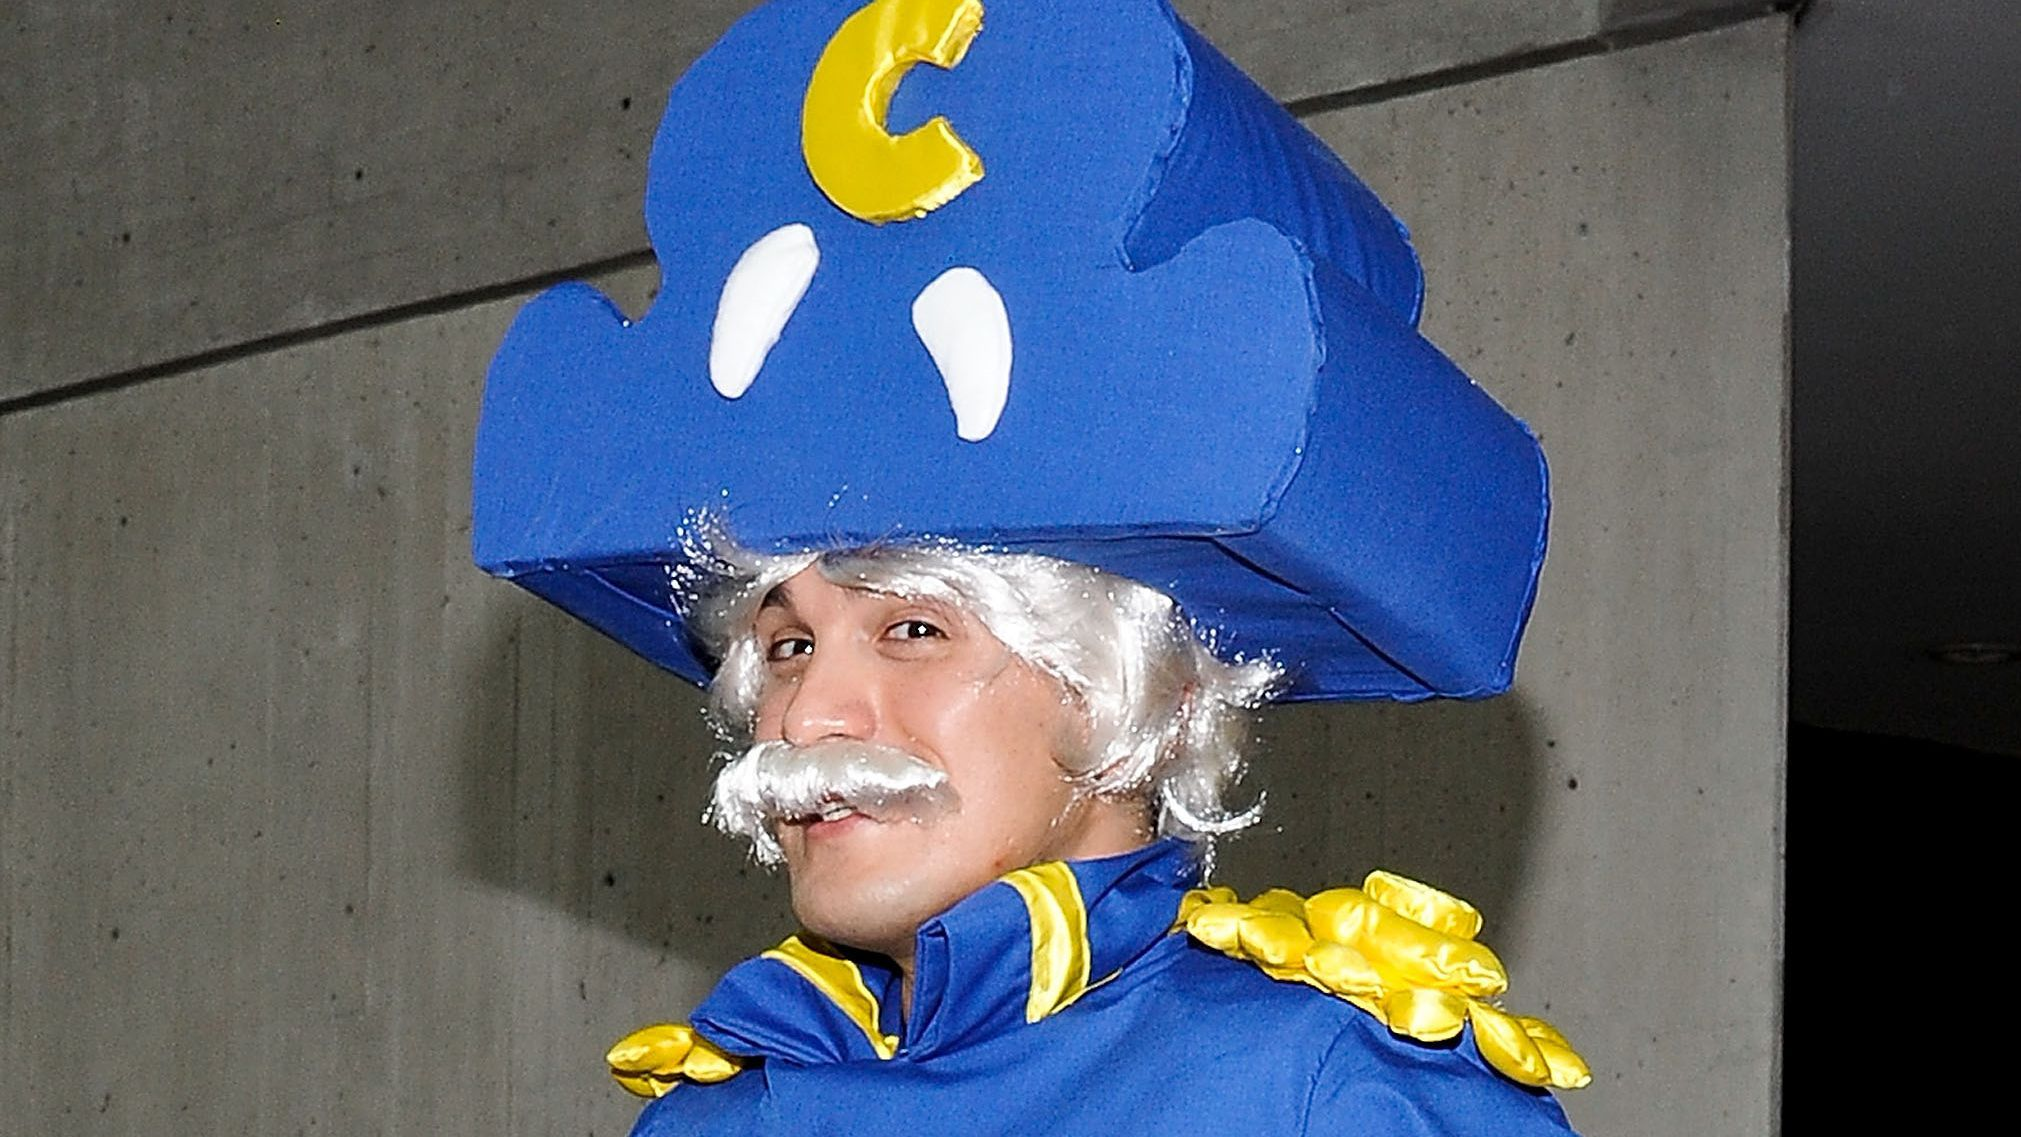 captain crunch passes deez